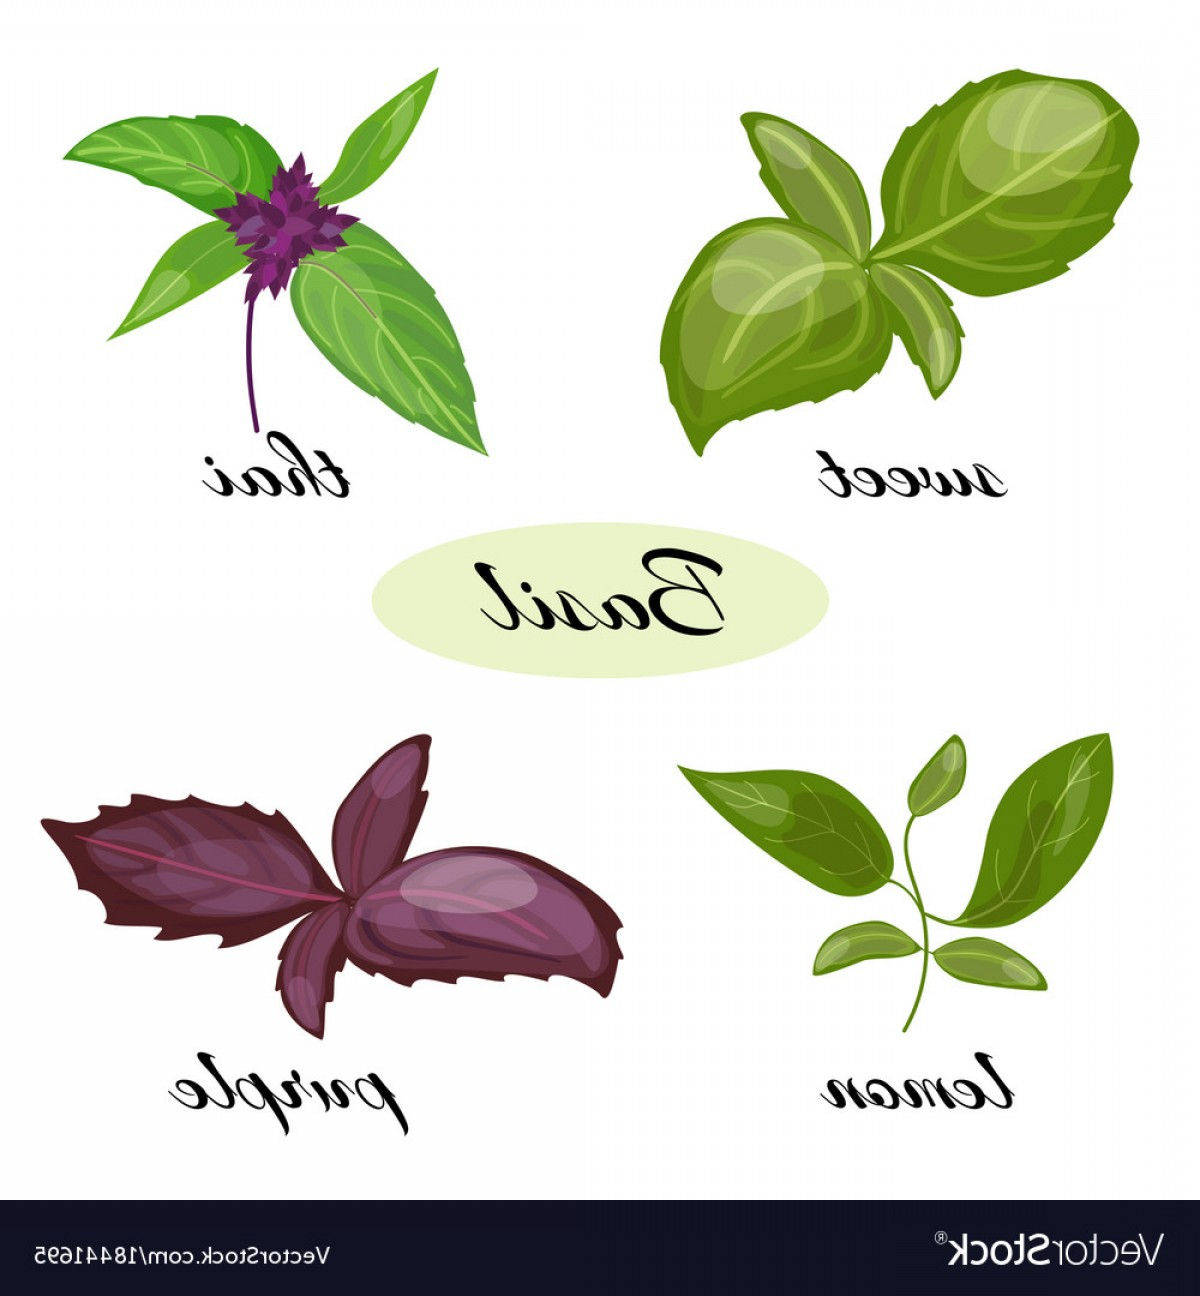 Basil Vector: Set Of Basil Leaves Different Types Of Basil Vector